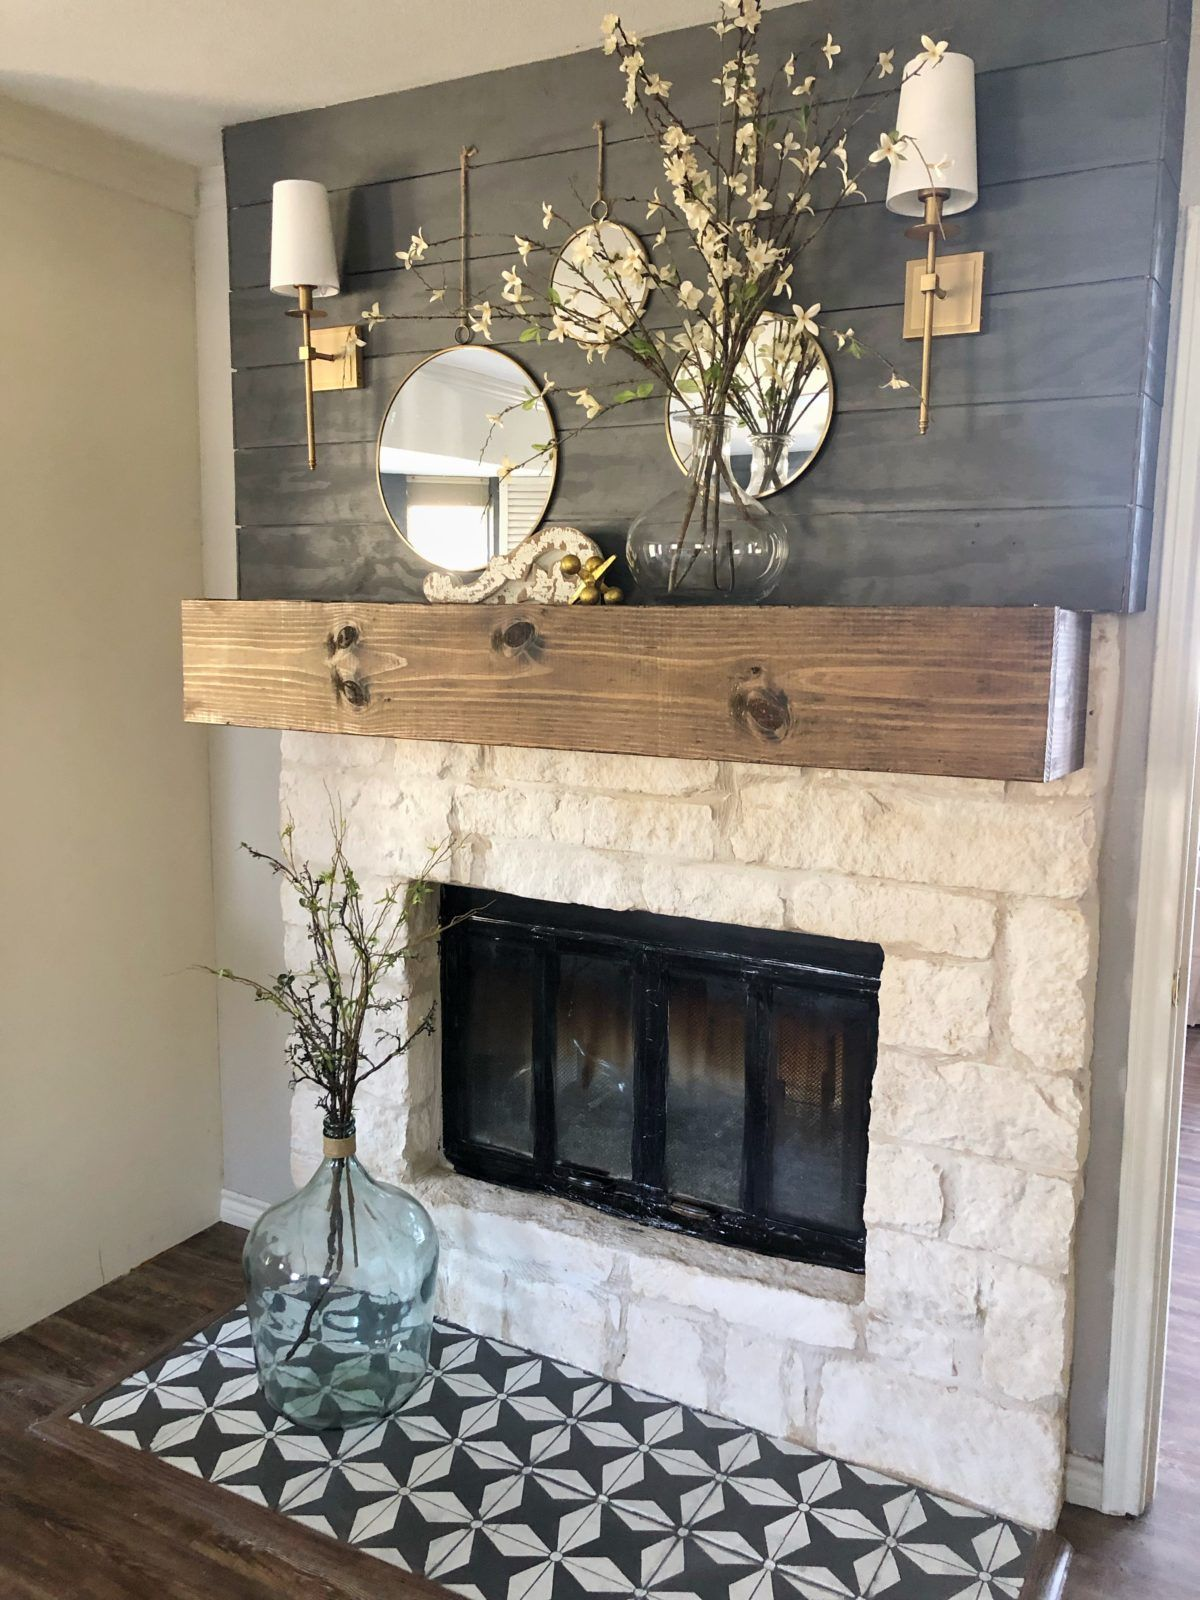 Home Decor Trends For 2020 * Hip & Humble Style in 2020 | Painting shiplap,  Diy fireplace, Grey bedroom decor